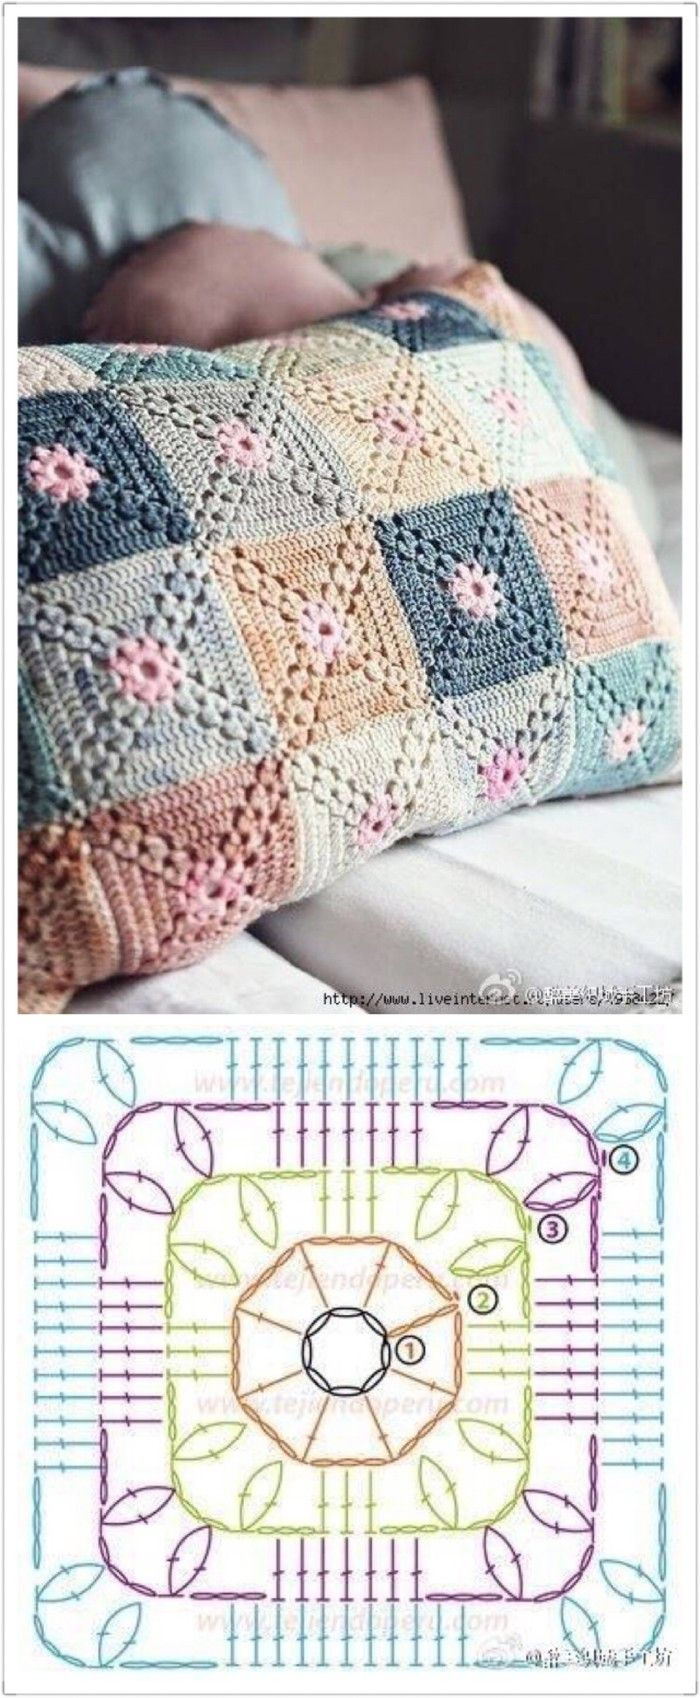 Pin de Susan McKee en Crotchet Ideas | Pinterest | Ganchillo ...